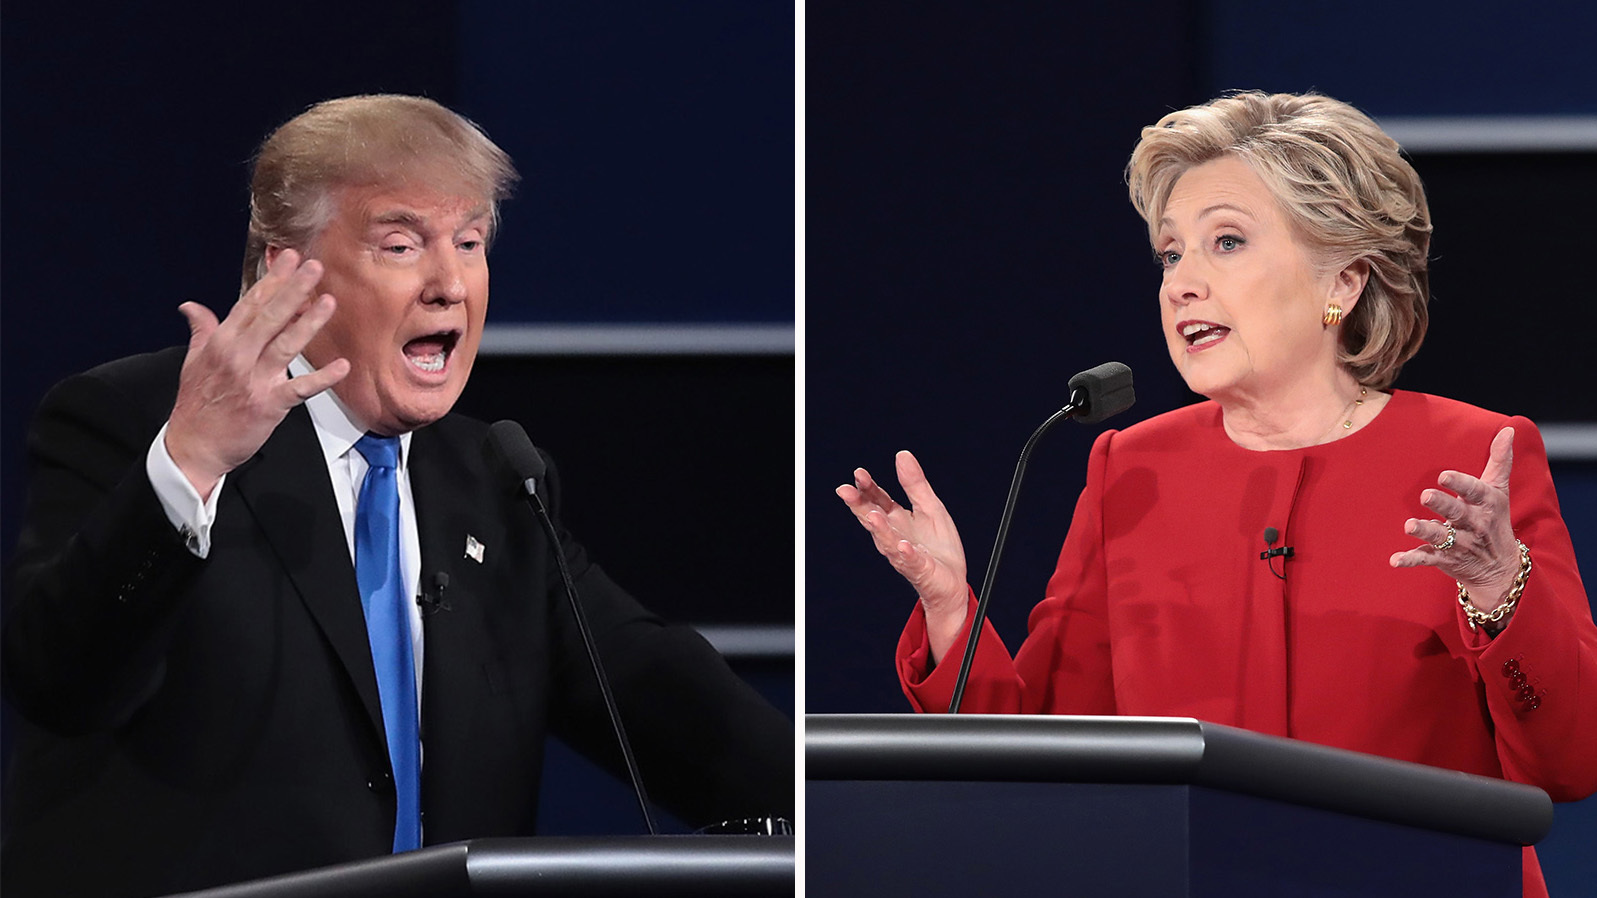 Left: Republican nominee Donald Trump speaks during the presidential debate at Hofstra University on Monday in Hempstead, N.Y. Right: Democratic nominee Hillary Clinton speaks during the debate. (Photo by Drew Angerer/Getty Images)